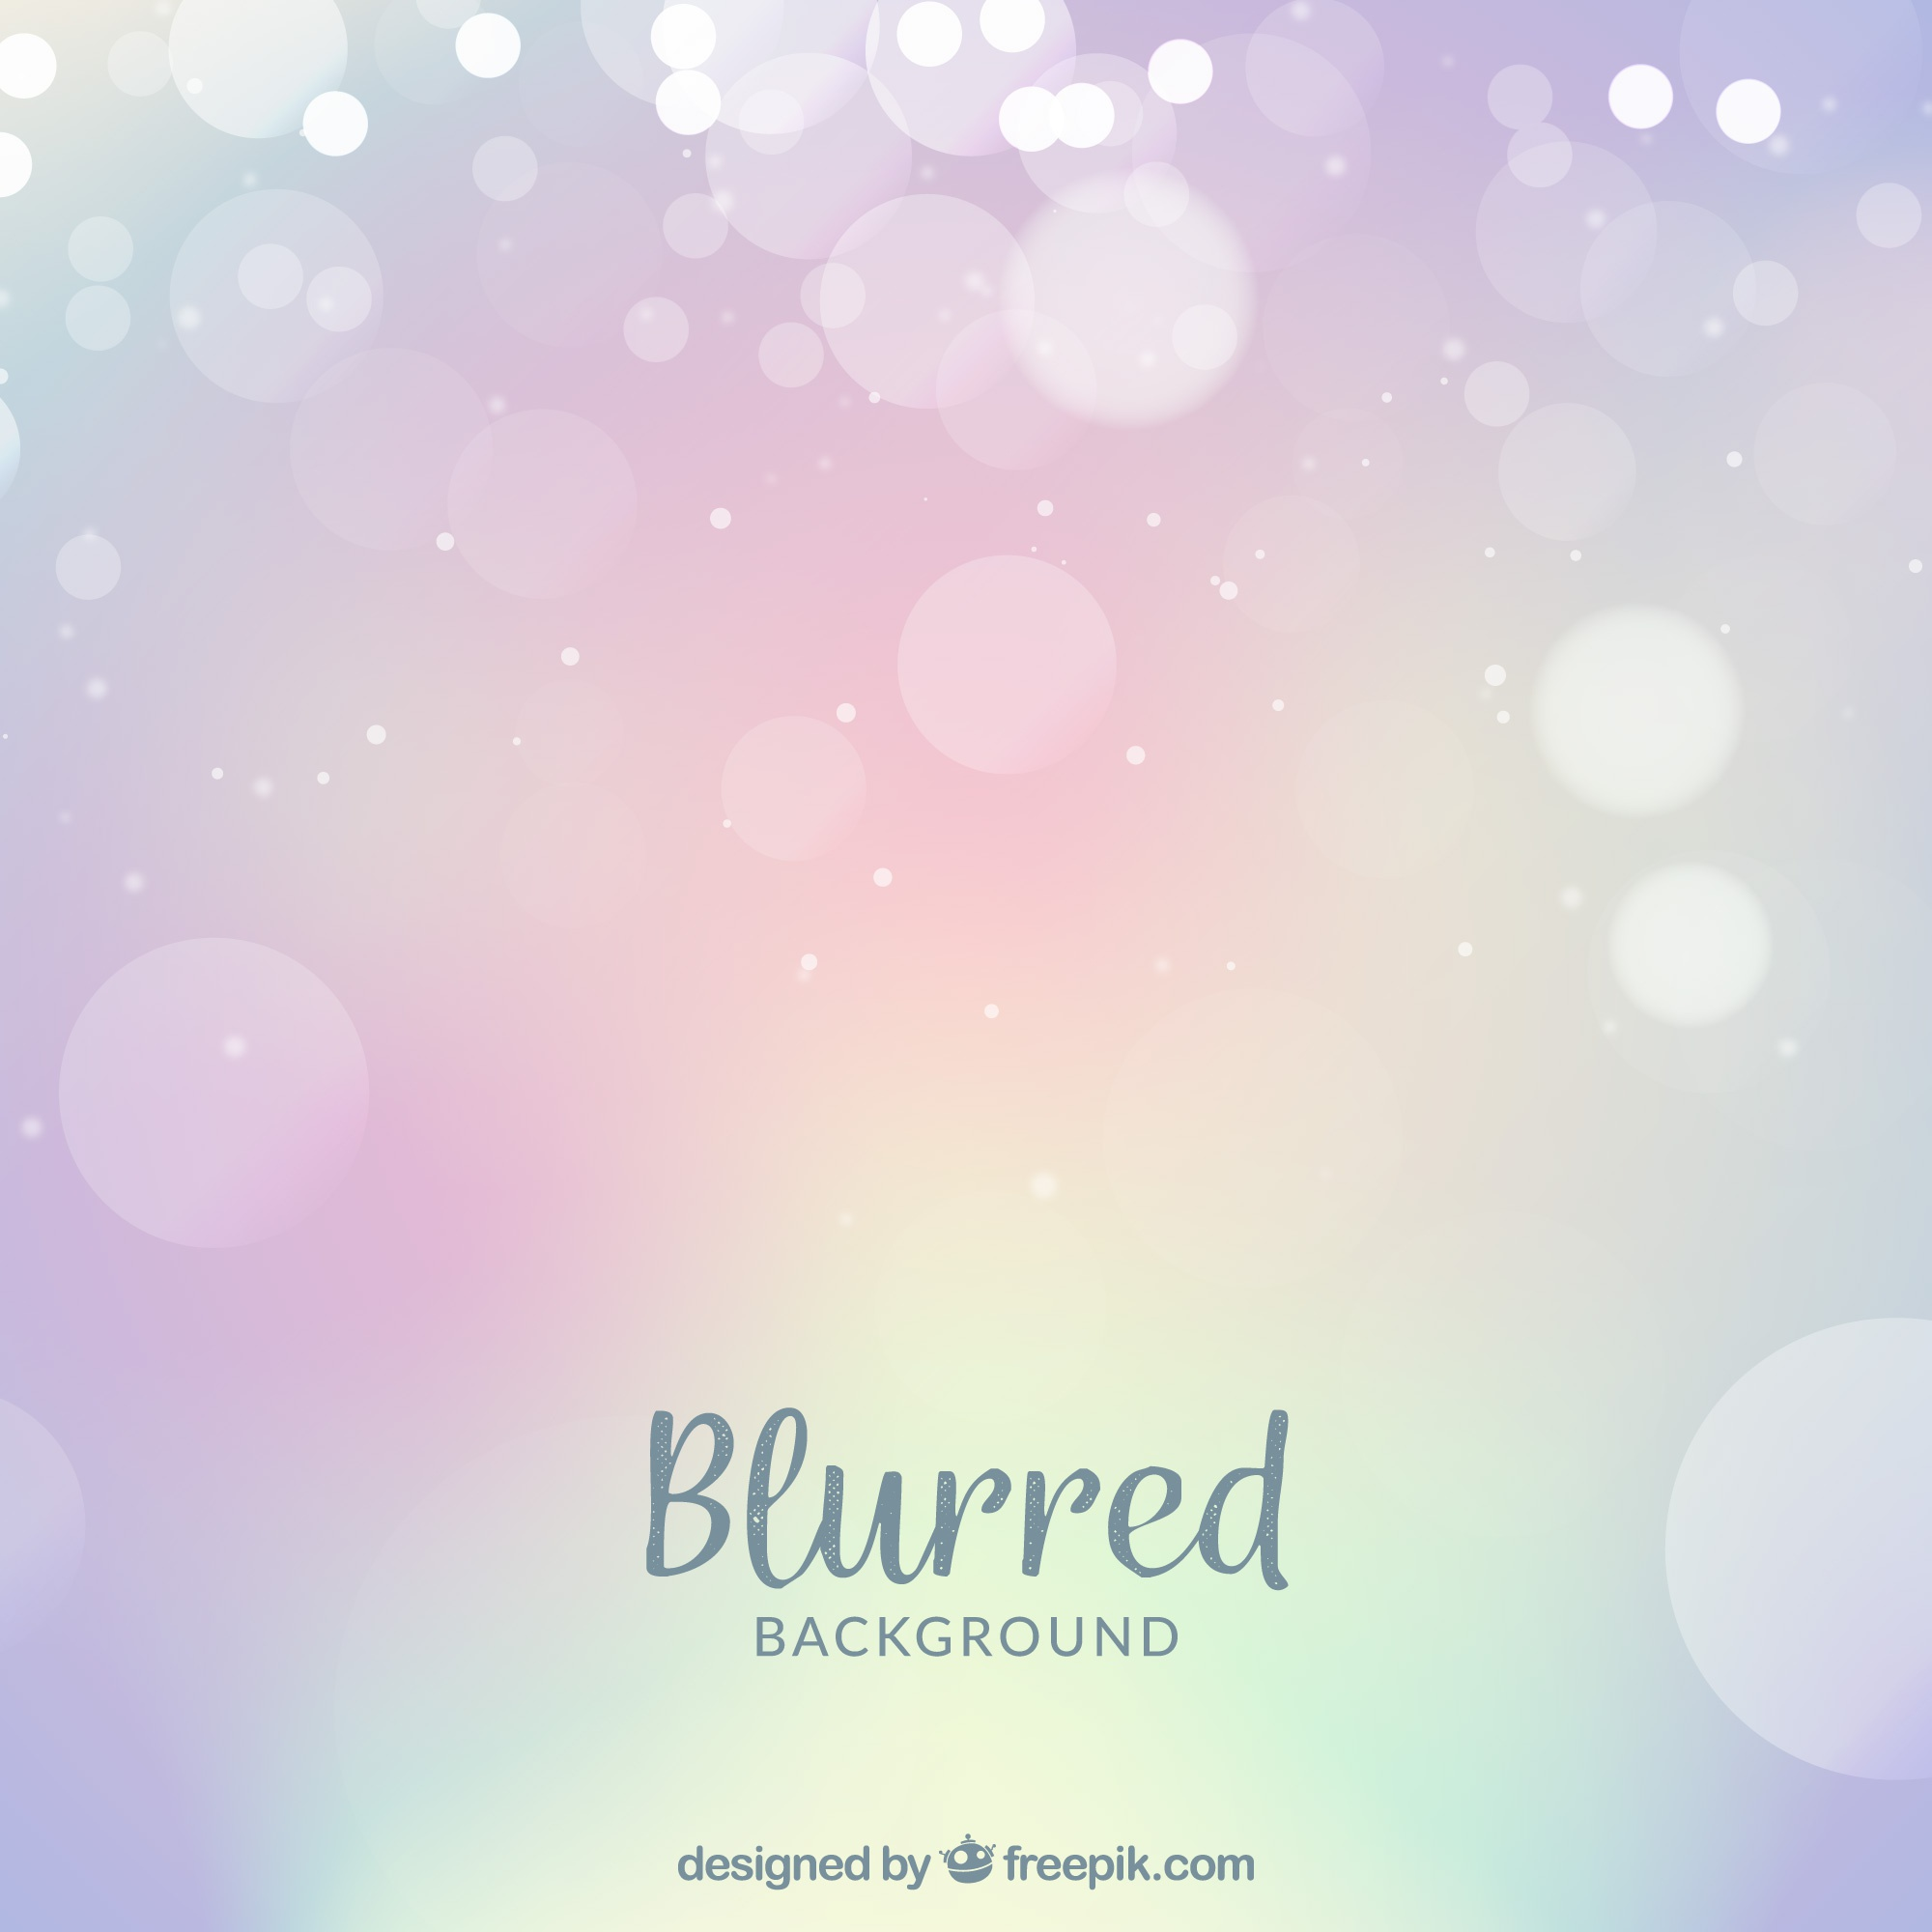 Blurred background with bright color